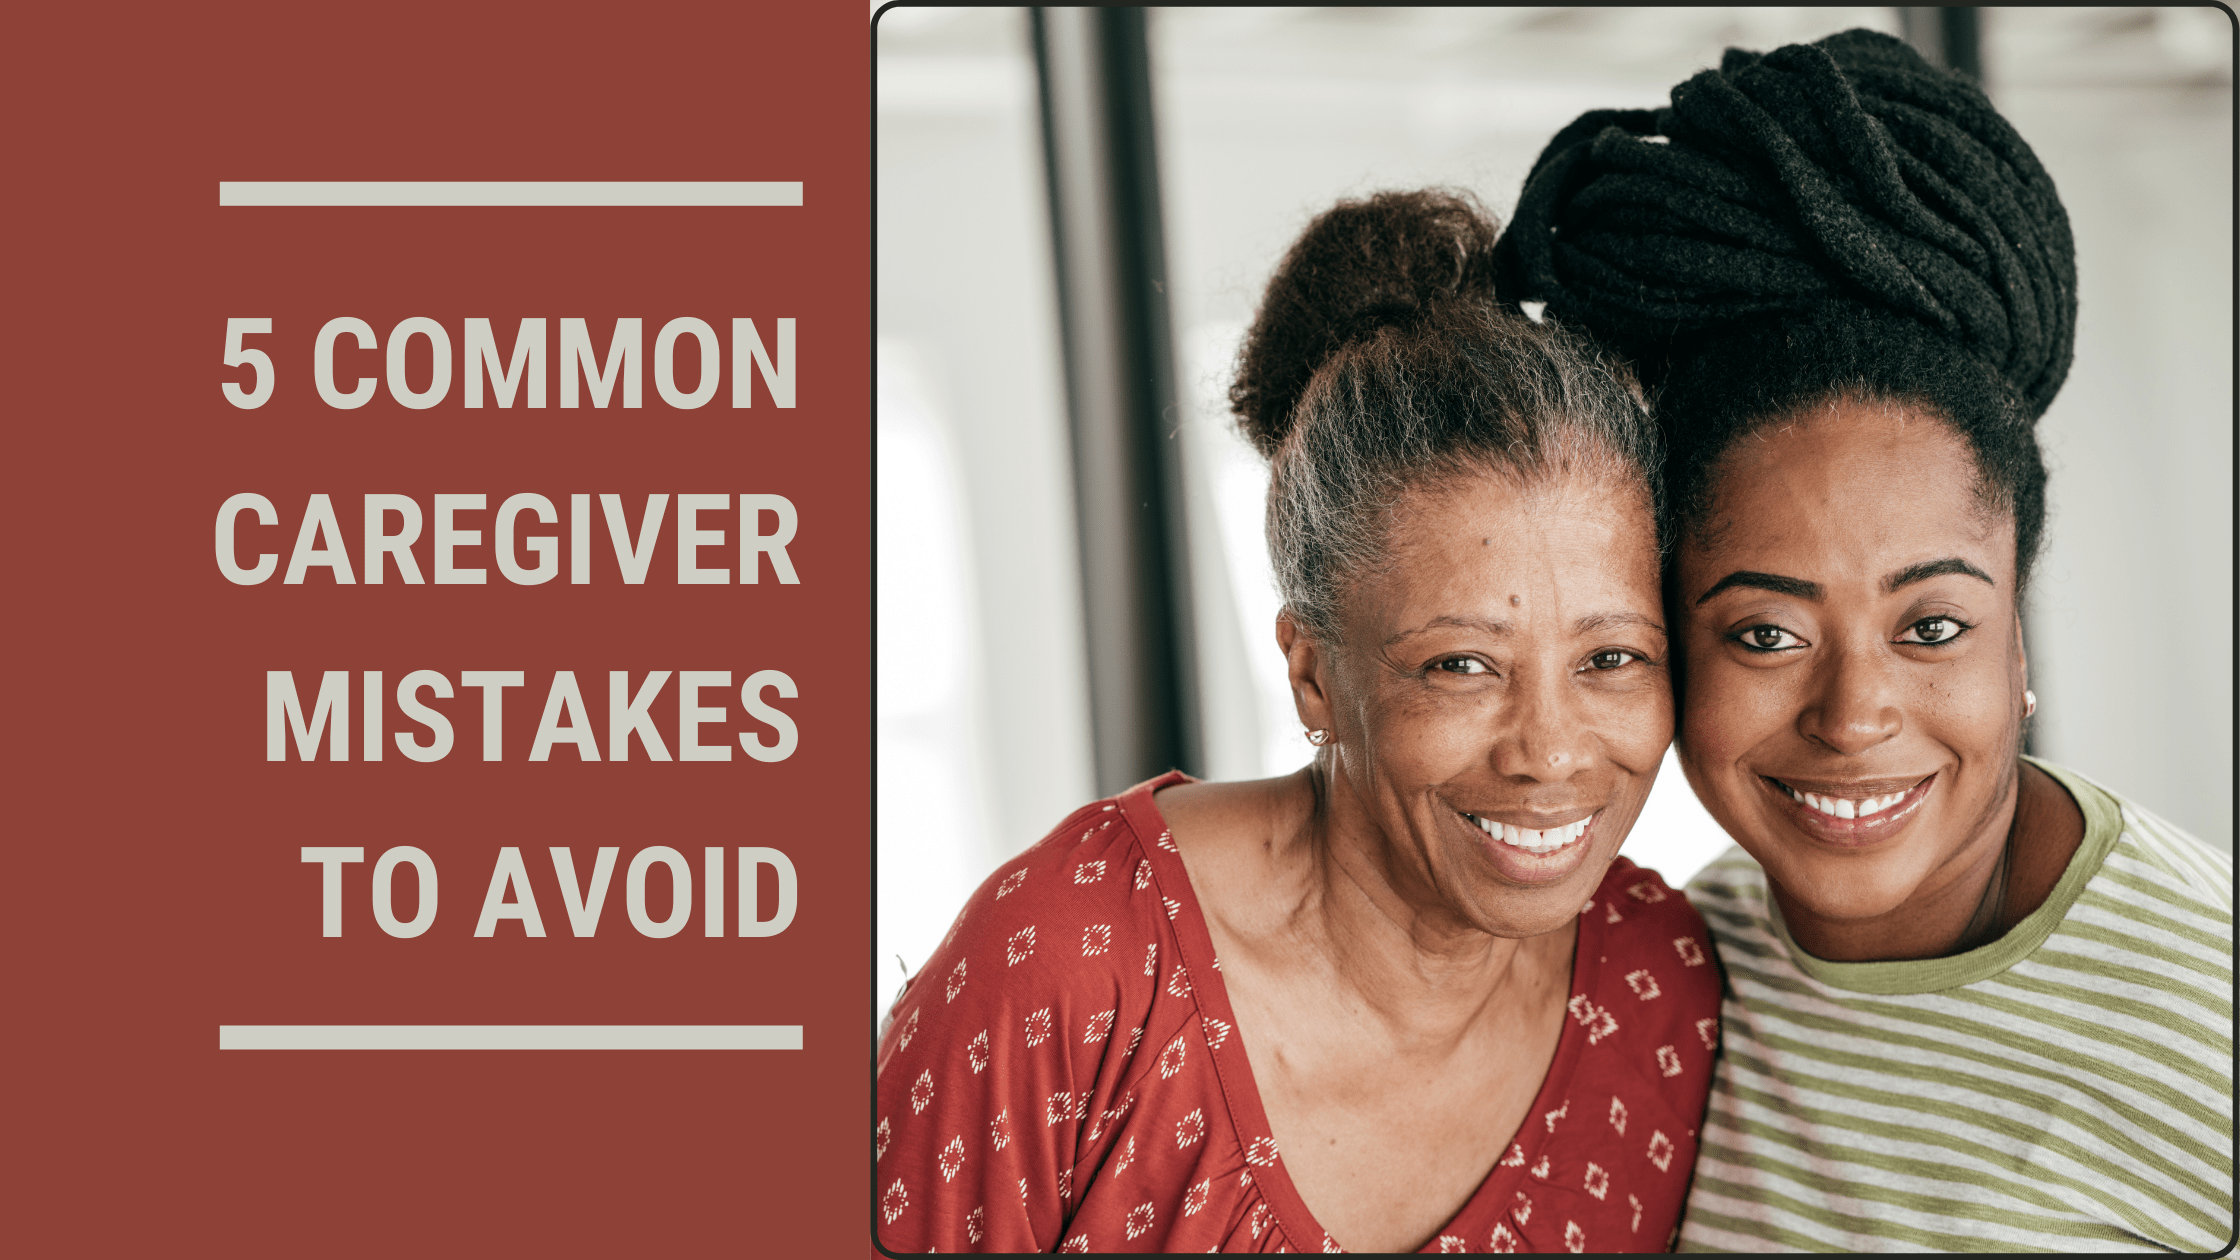 5 Common Caregiver Mistakes And How To Avoid Them